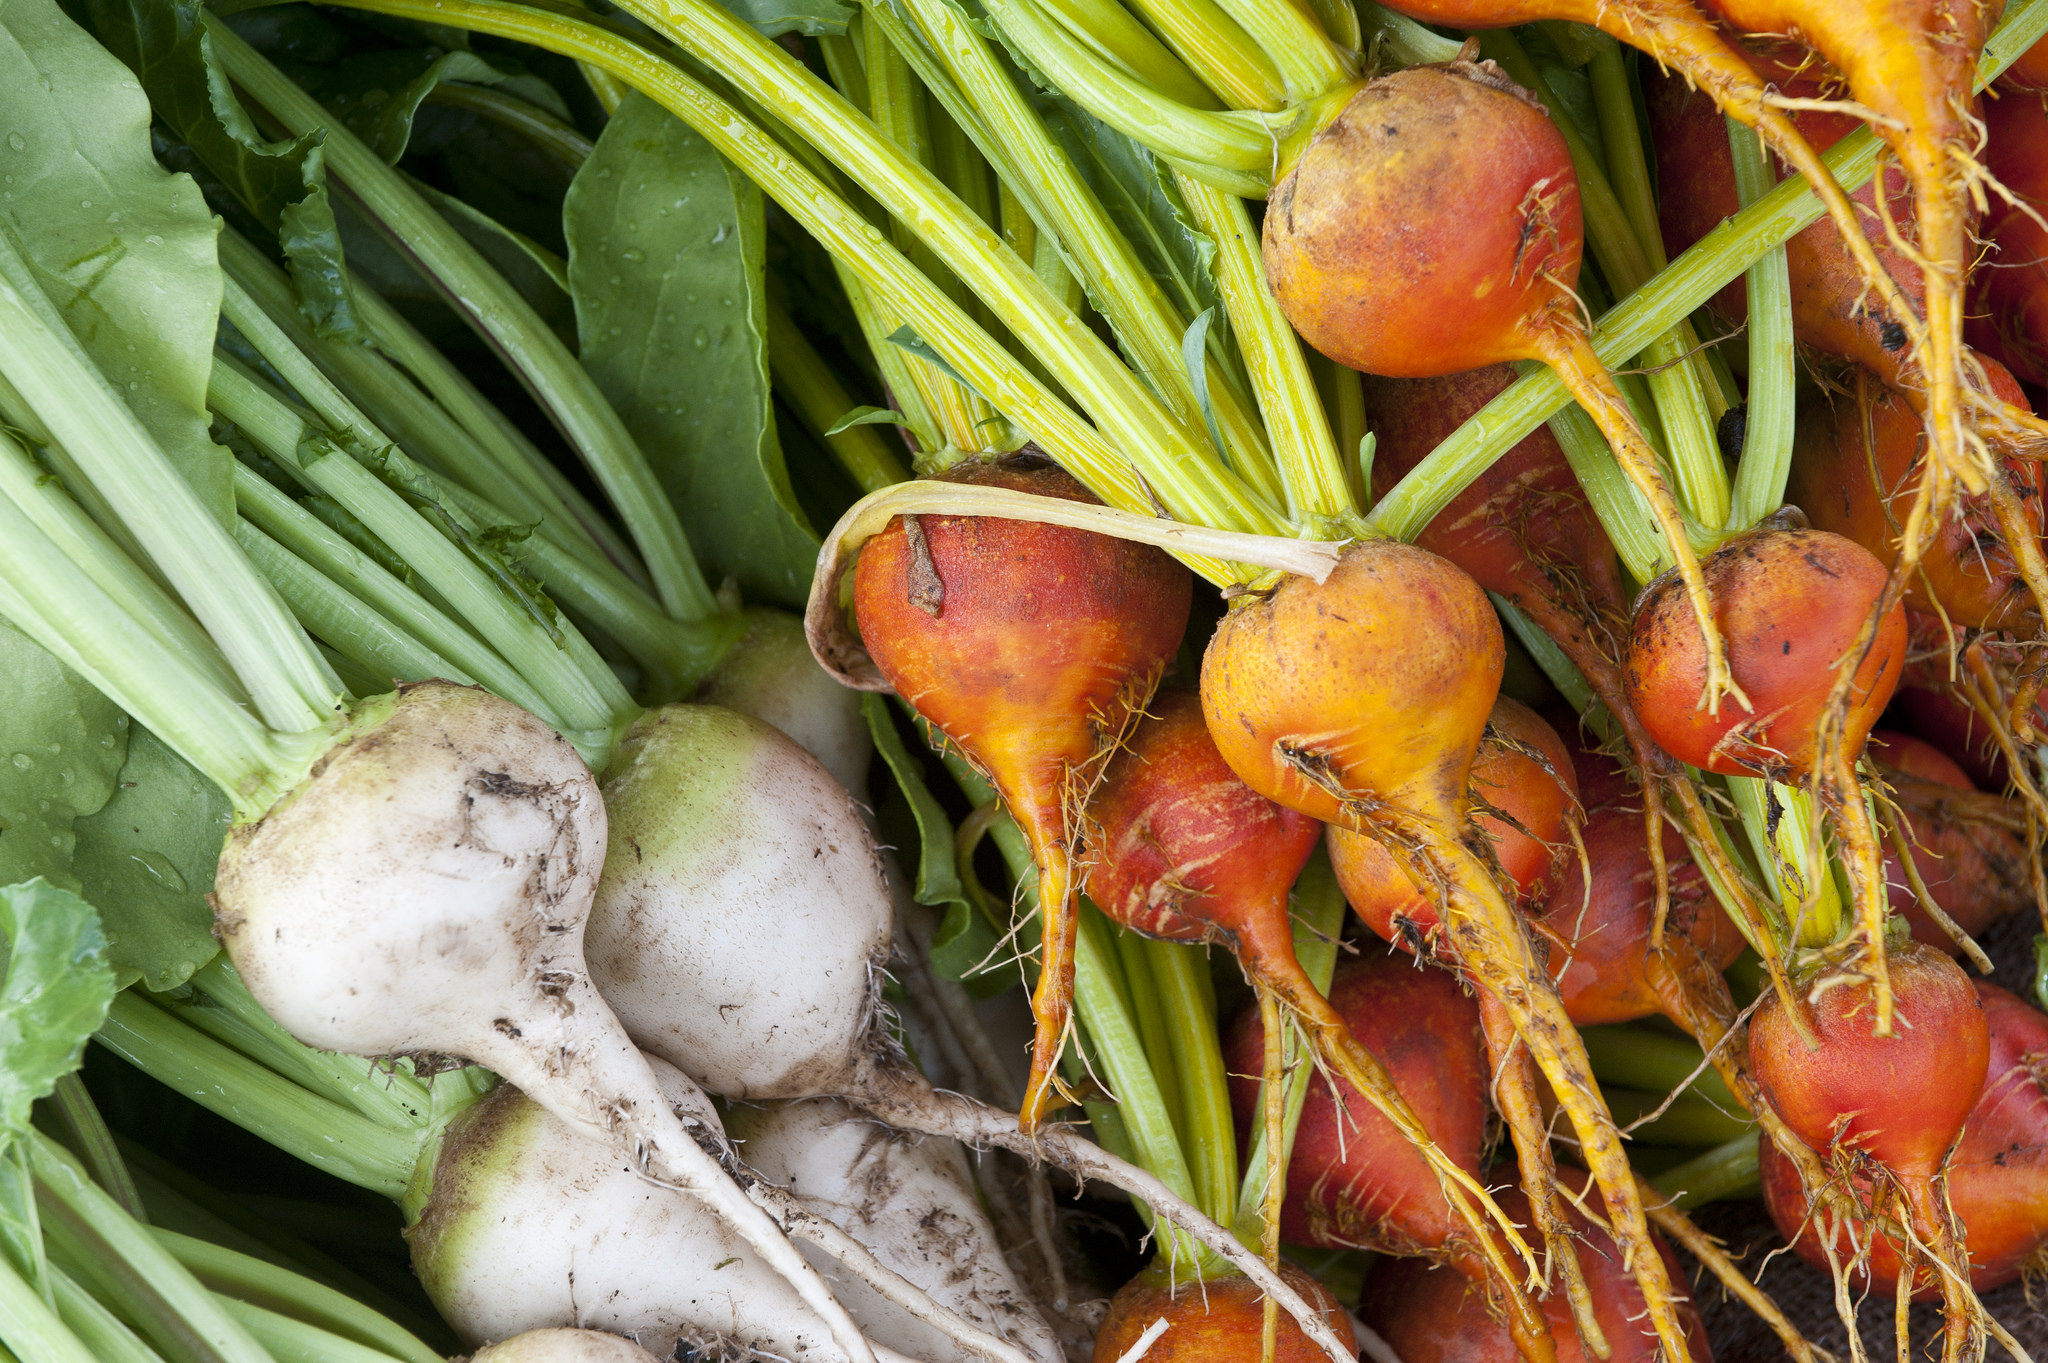 Garden beets; photo courtesy of Flickr cc/Oregon State University